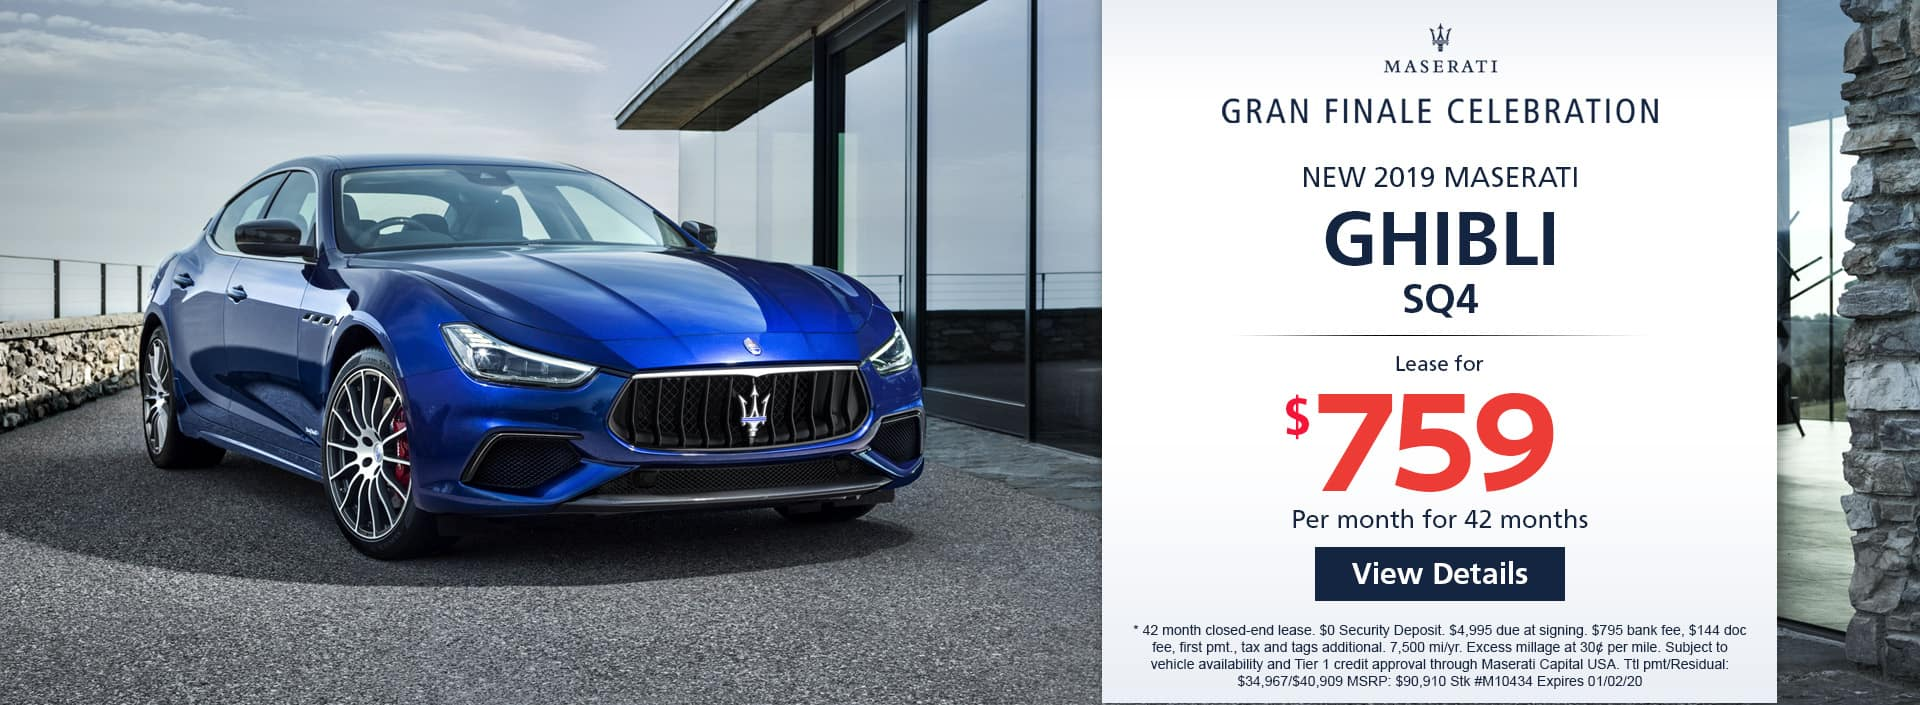 Lease a new 2019 MASERATI GHIBLI SQ4 for $759 a month for 42 months. Or get special 0% APR financing for up to 60 months or 0% APR financing up to 72 months